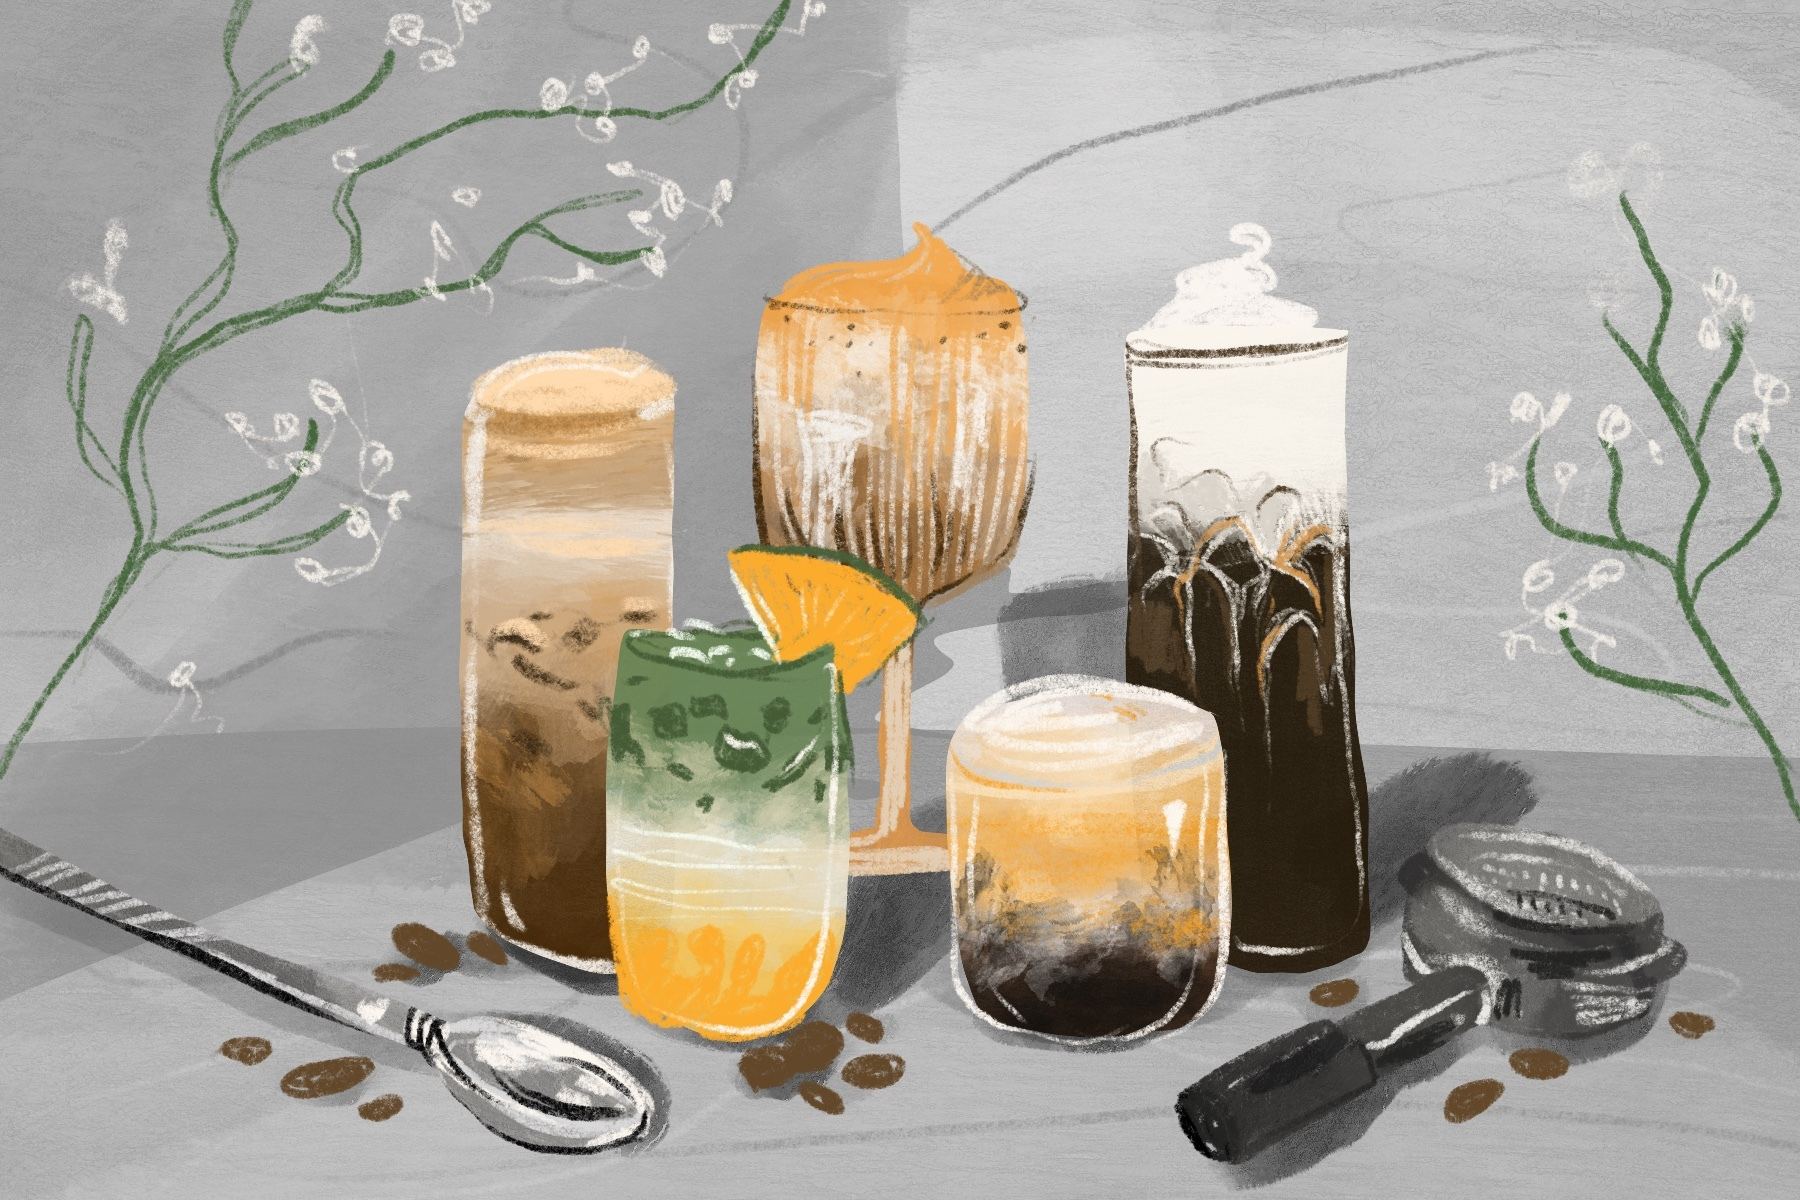 In an article about Caffeinication, an illustration of an array of colorful and vibrant coffee drinks